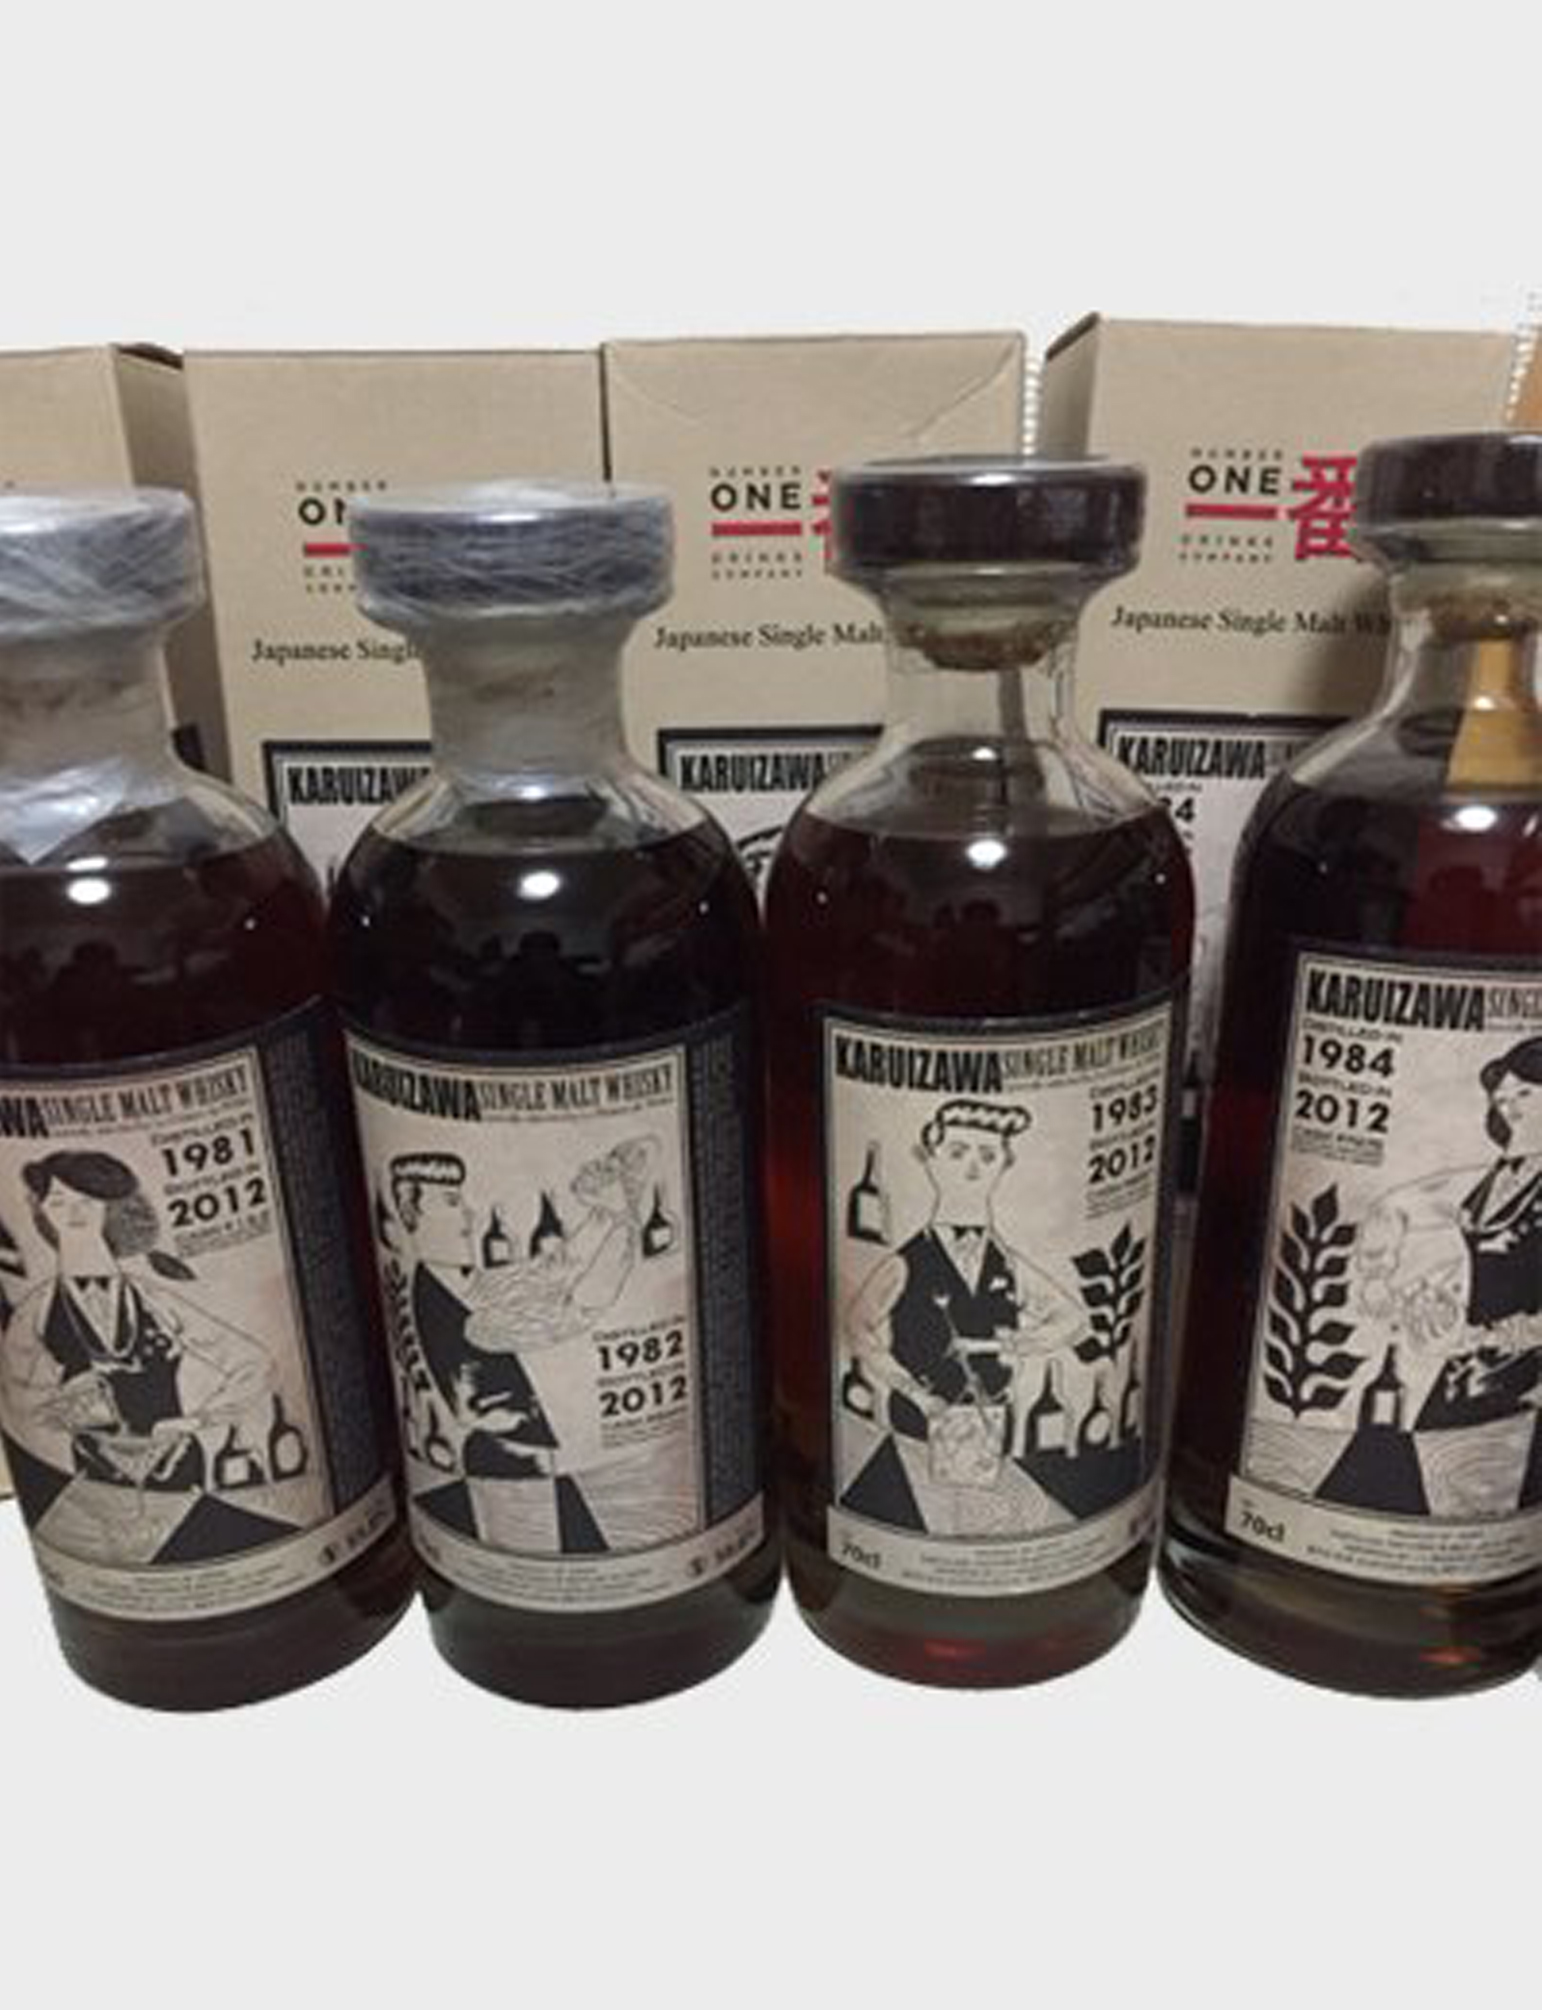 Most Expensive Japanese Whisky